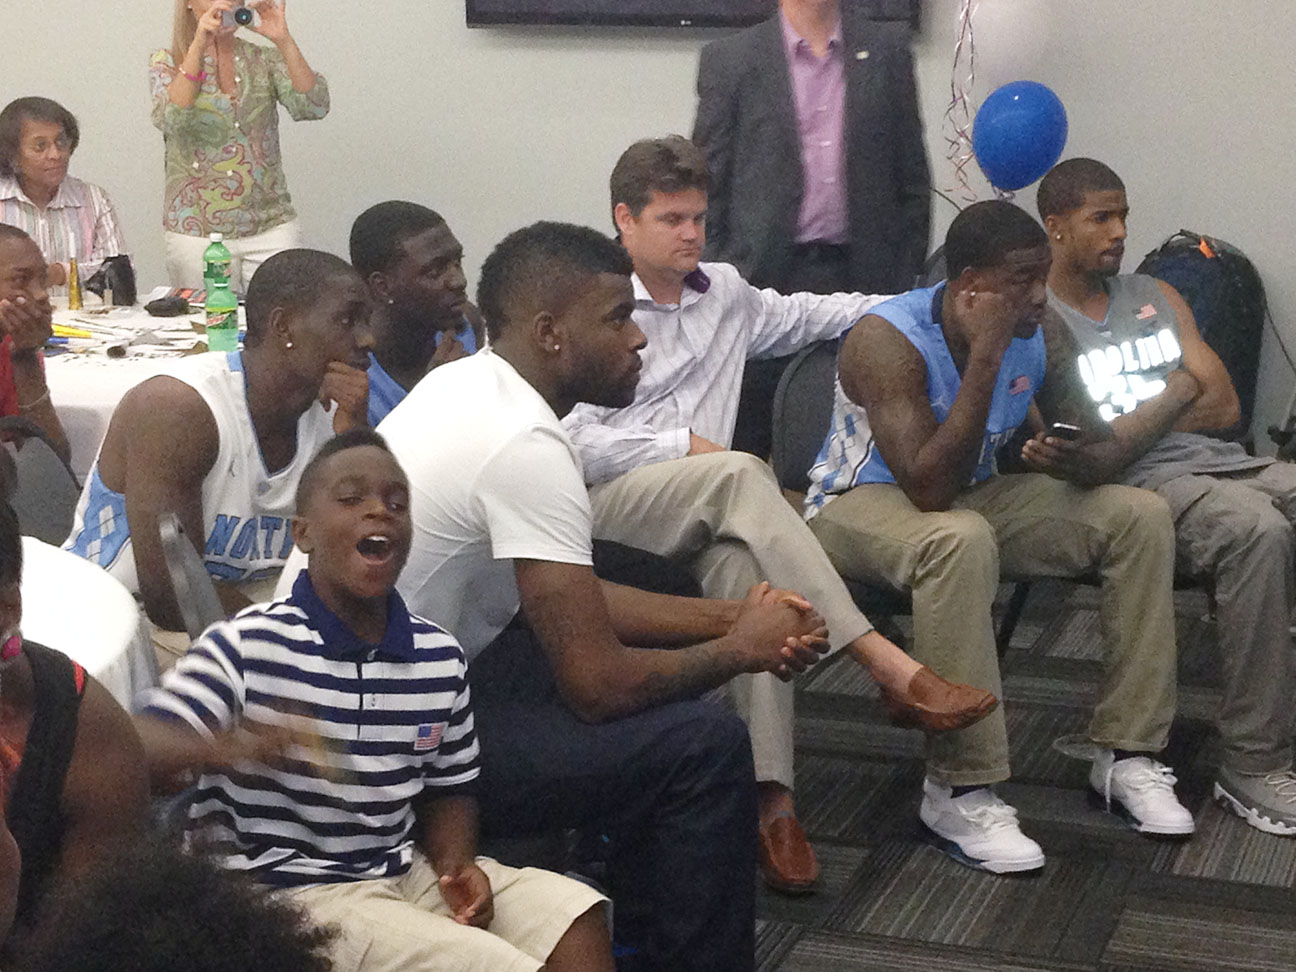 Reggie Bullock, center, waits for his name to be called during an NBA Draft party at the Woodmen Community Center on June 27, 2013. He was selected by the Los Angeles Clippers with the 25th pick of the first round. Photo by Bryan Hanks / Neuse News